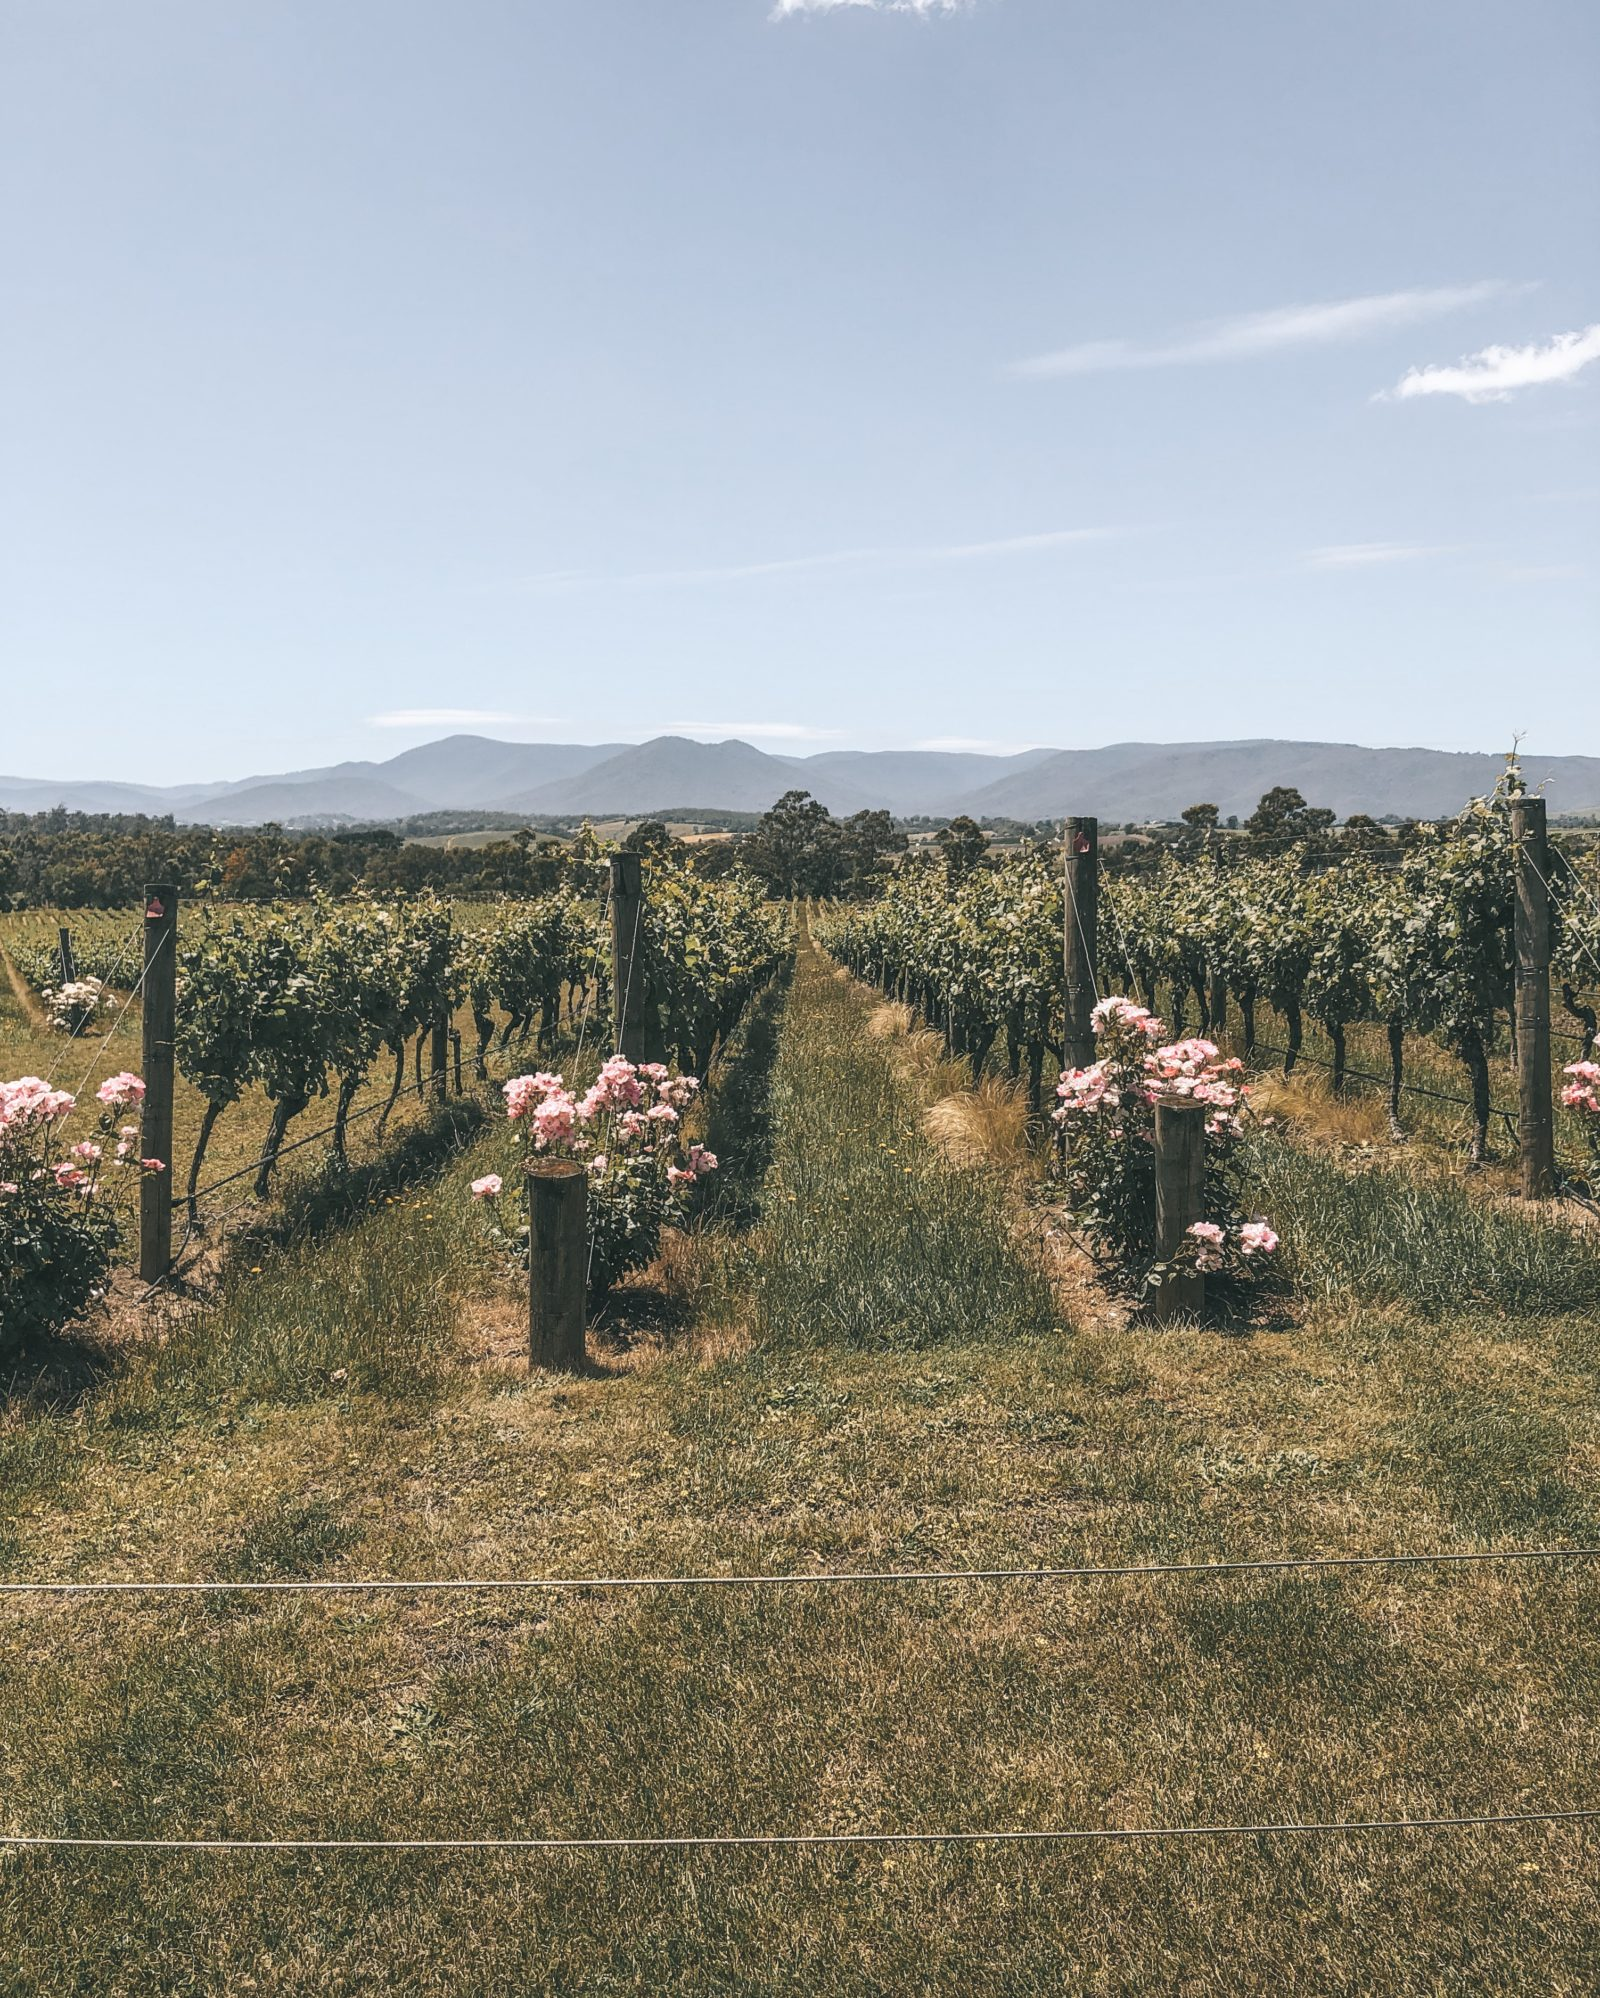 Honeymoon in Australia - Moet Chandon Vineyard